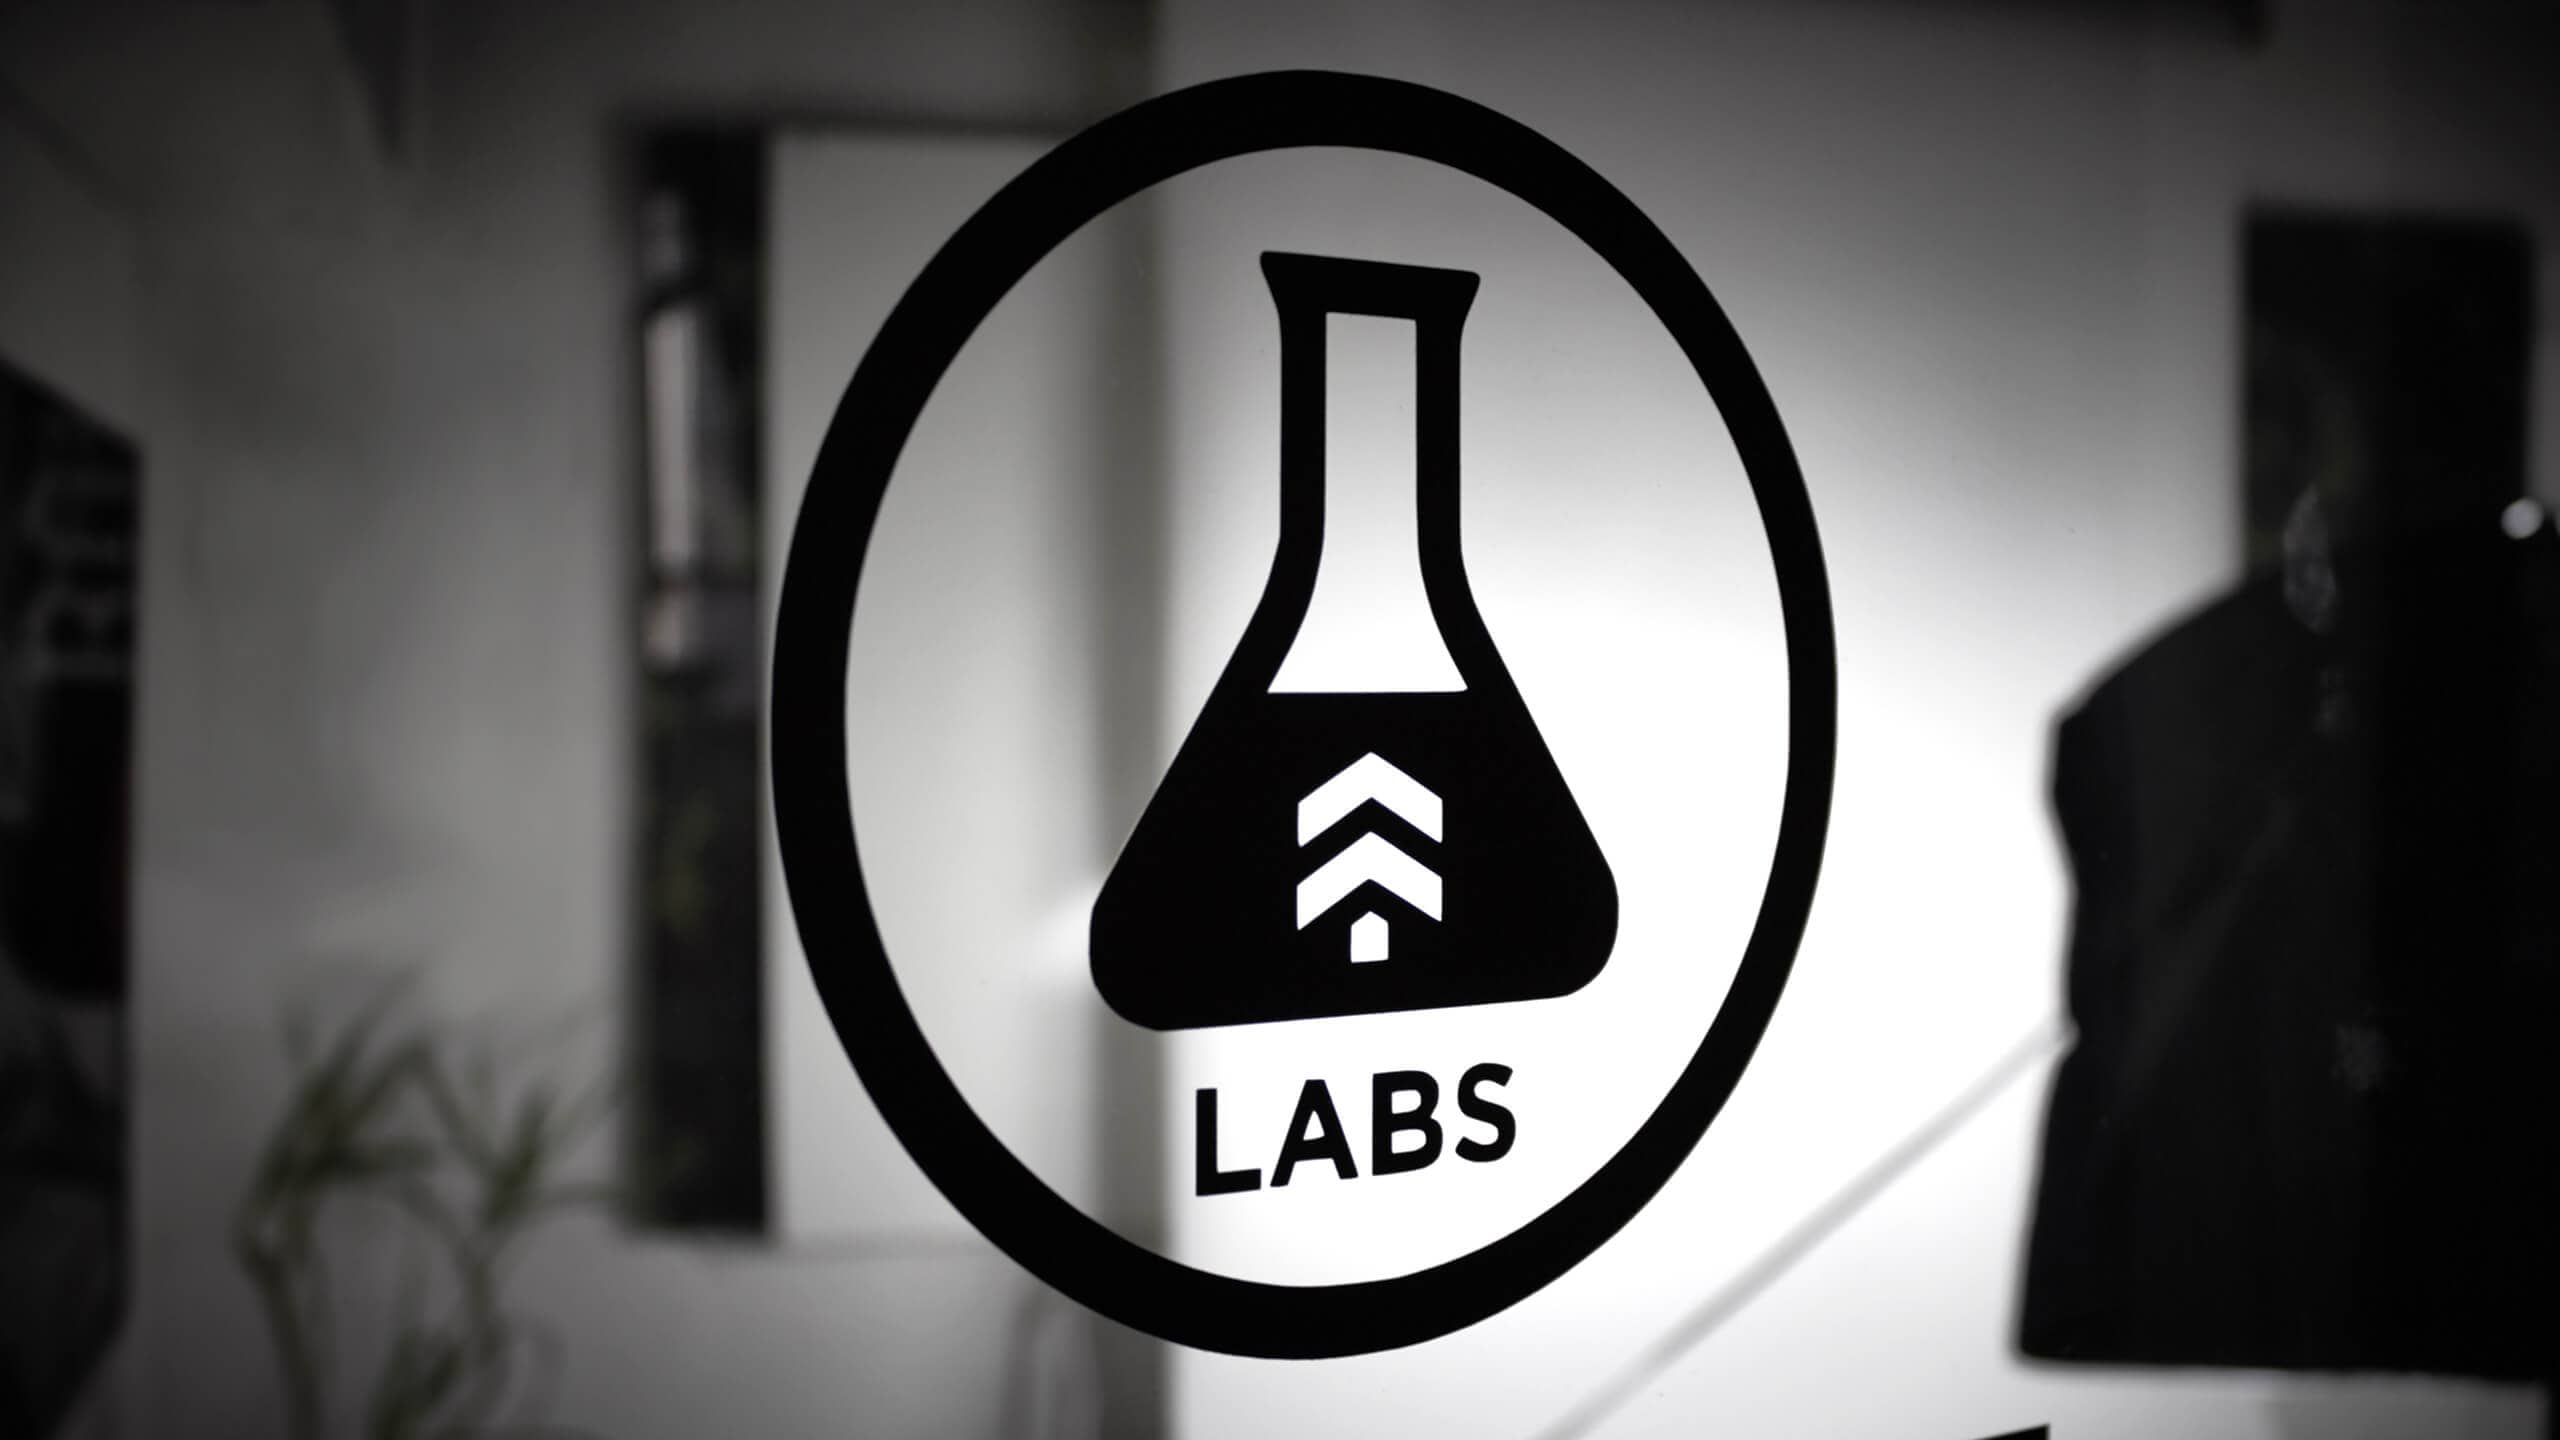 SPROUT LABS HAS MOVED!